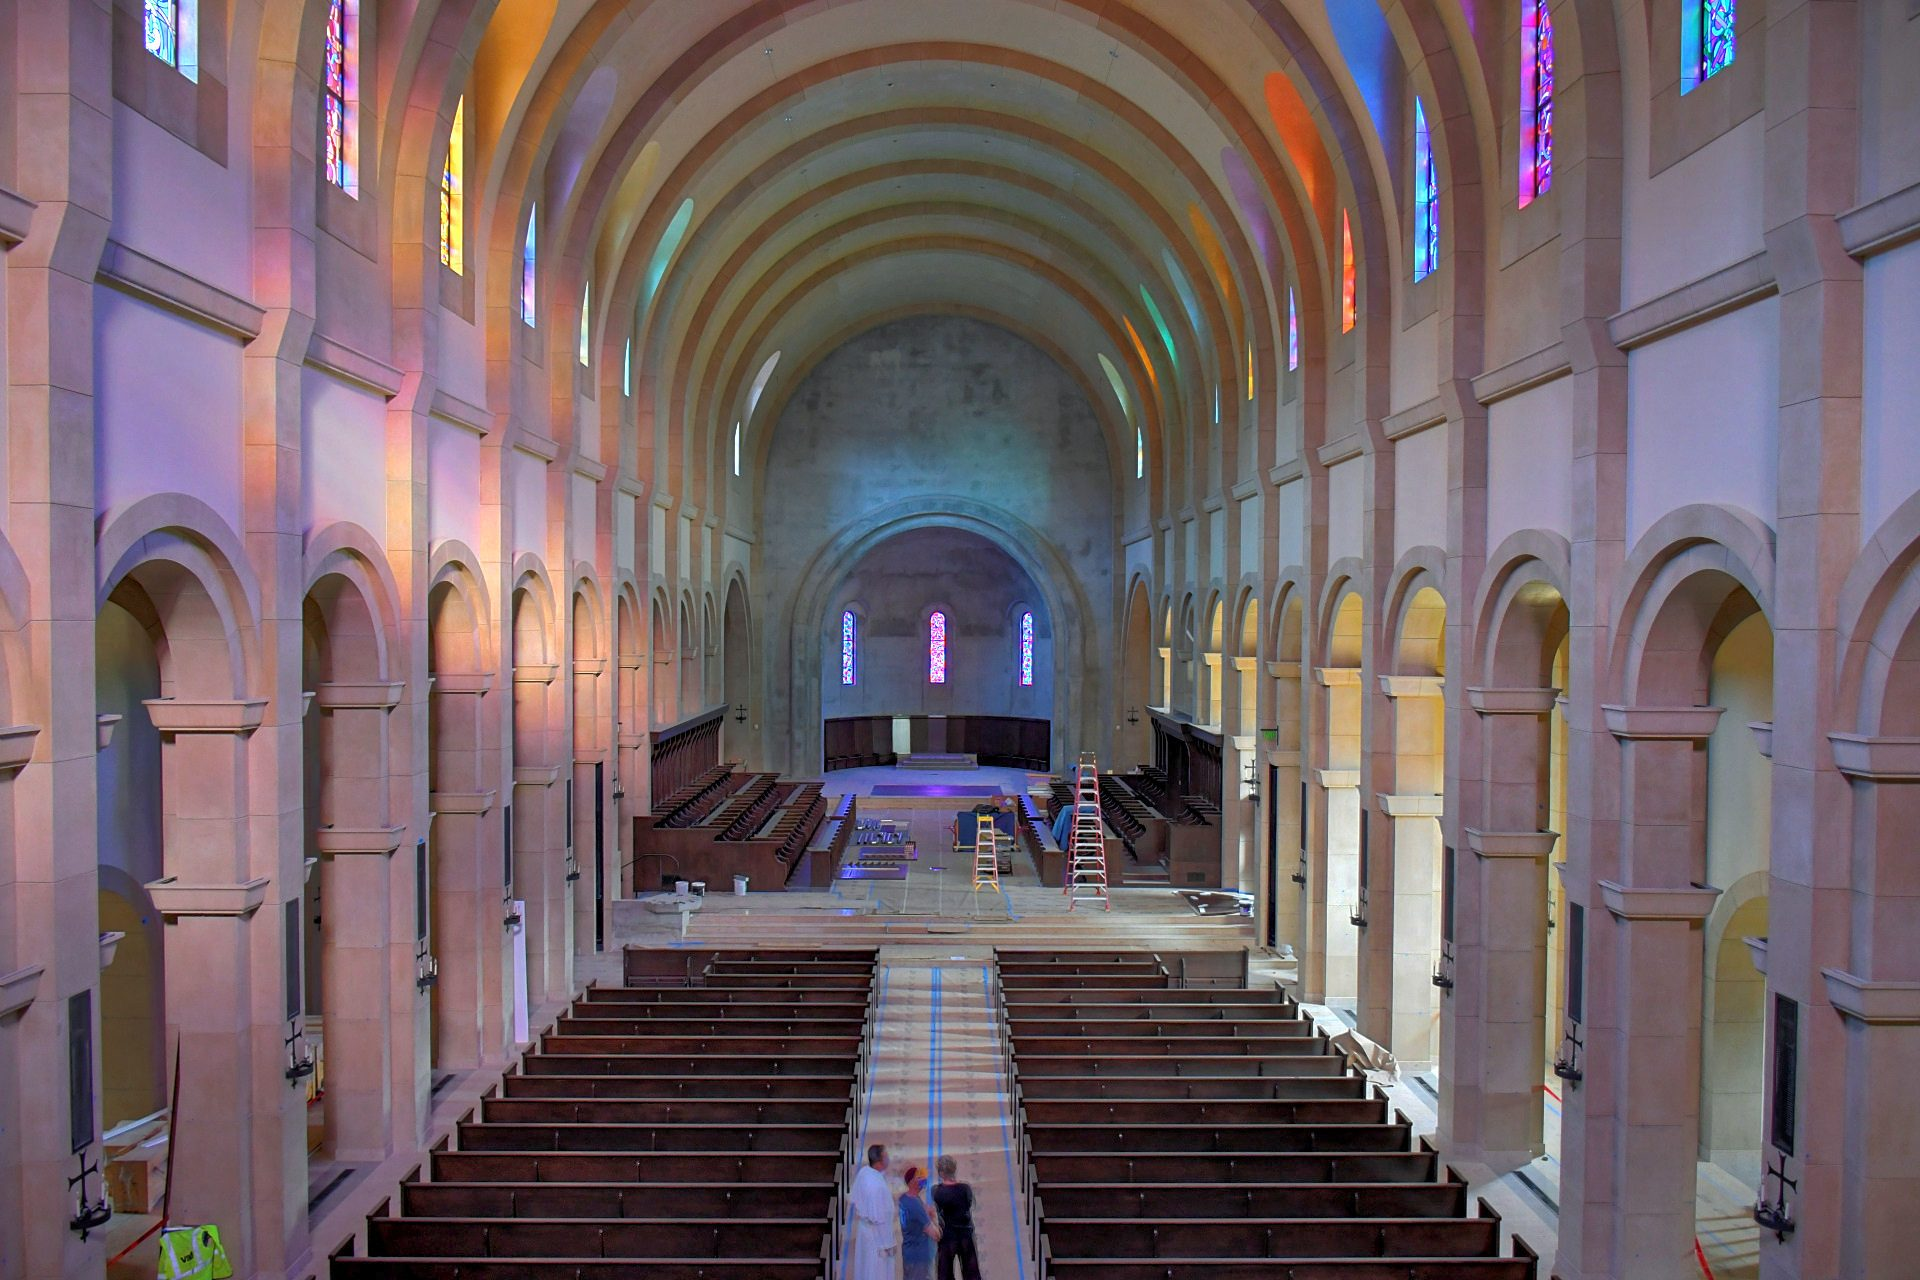 st. michael's abbey interior